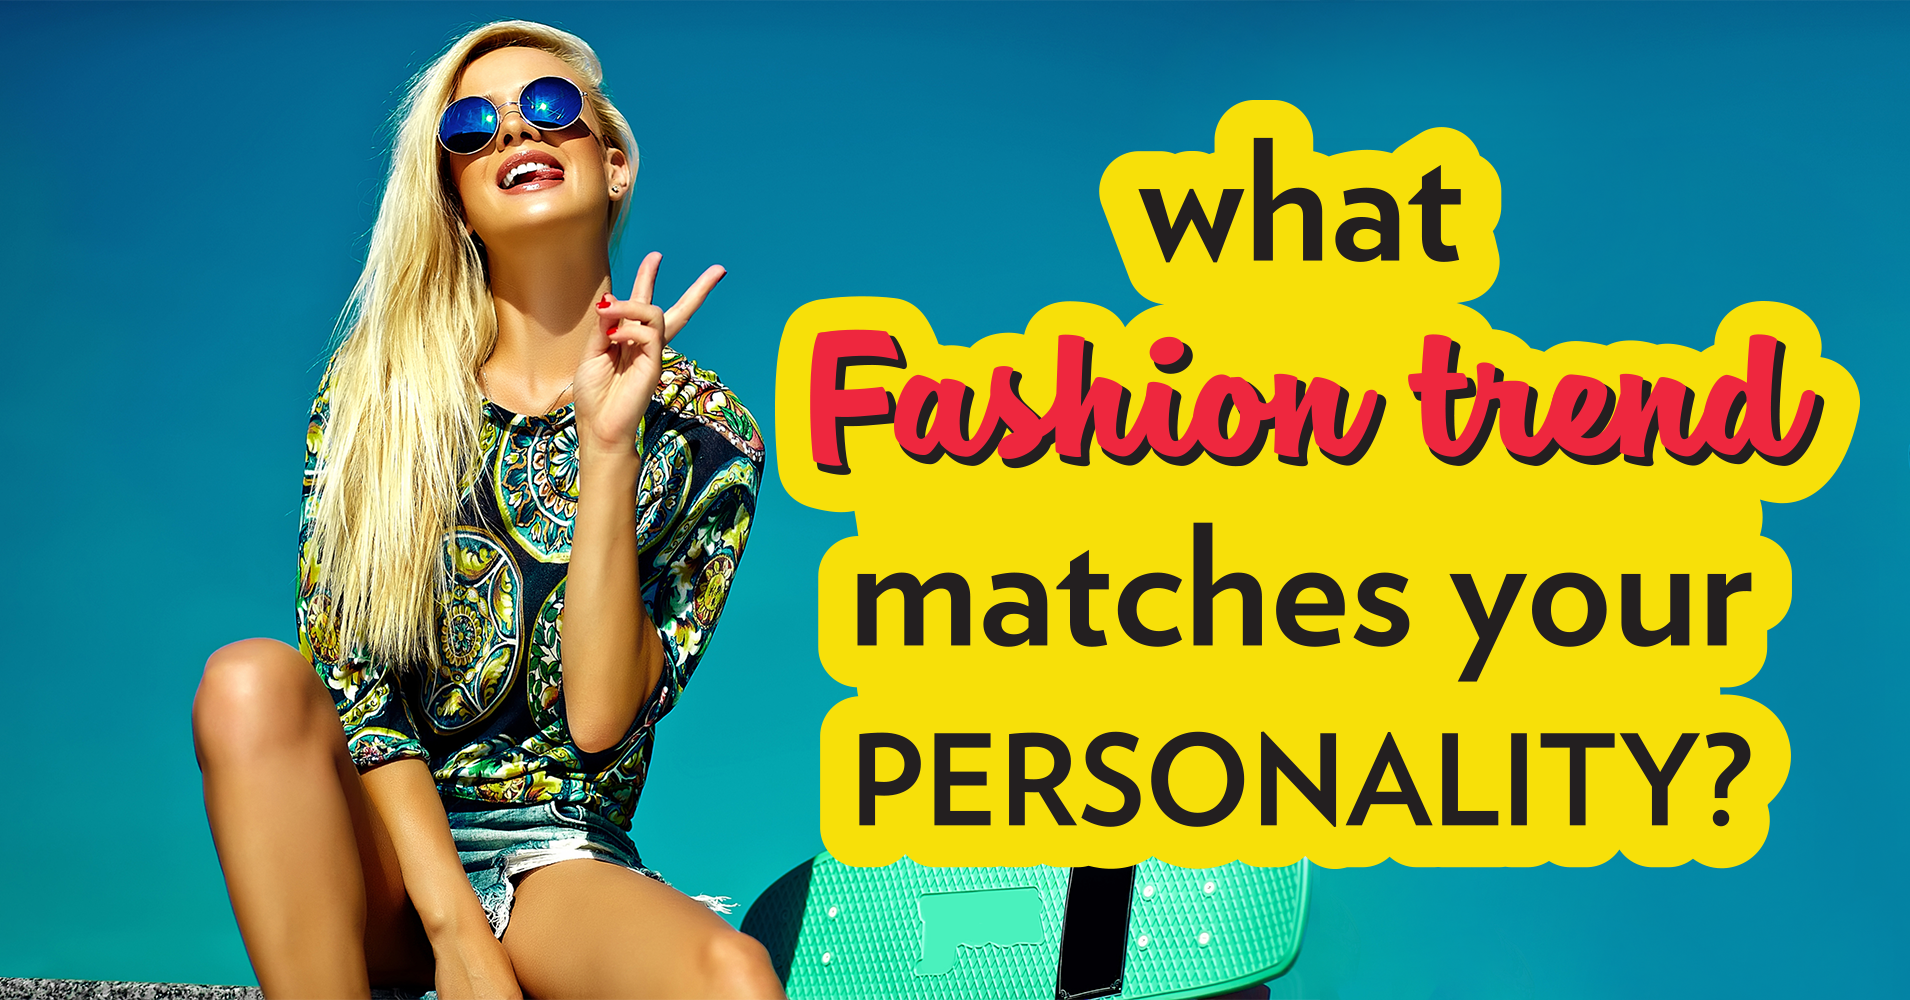 What Fashion Trend Matches Your Personality Quiz